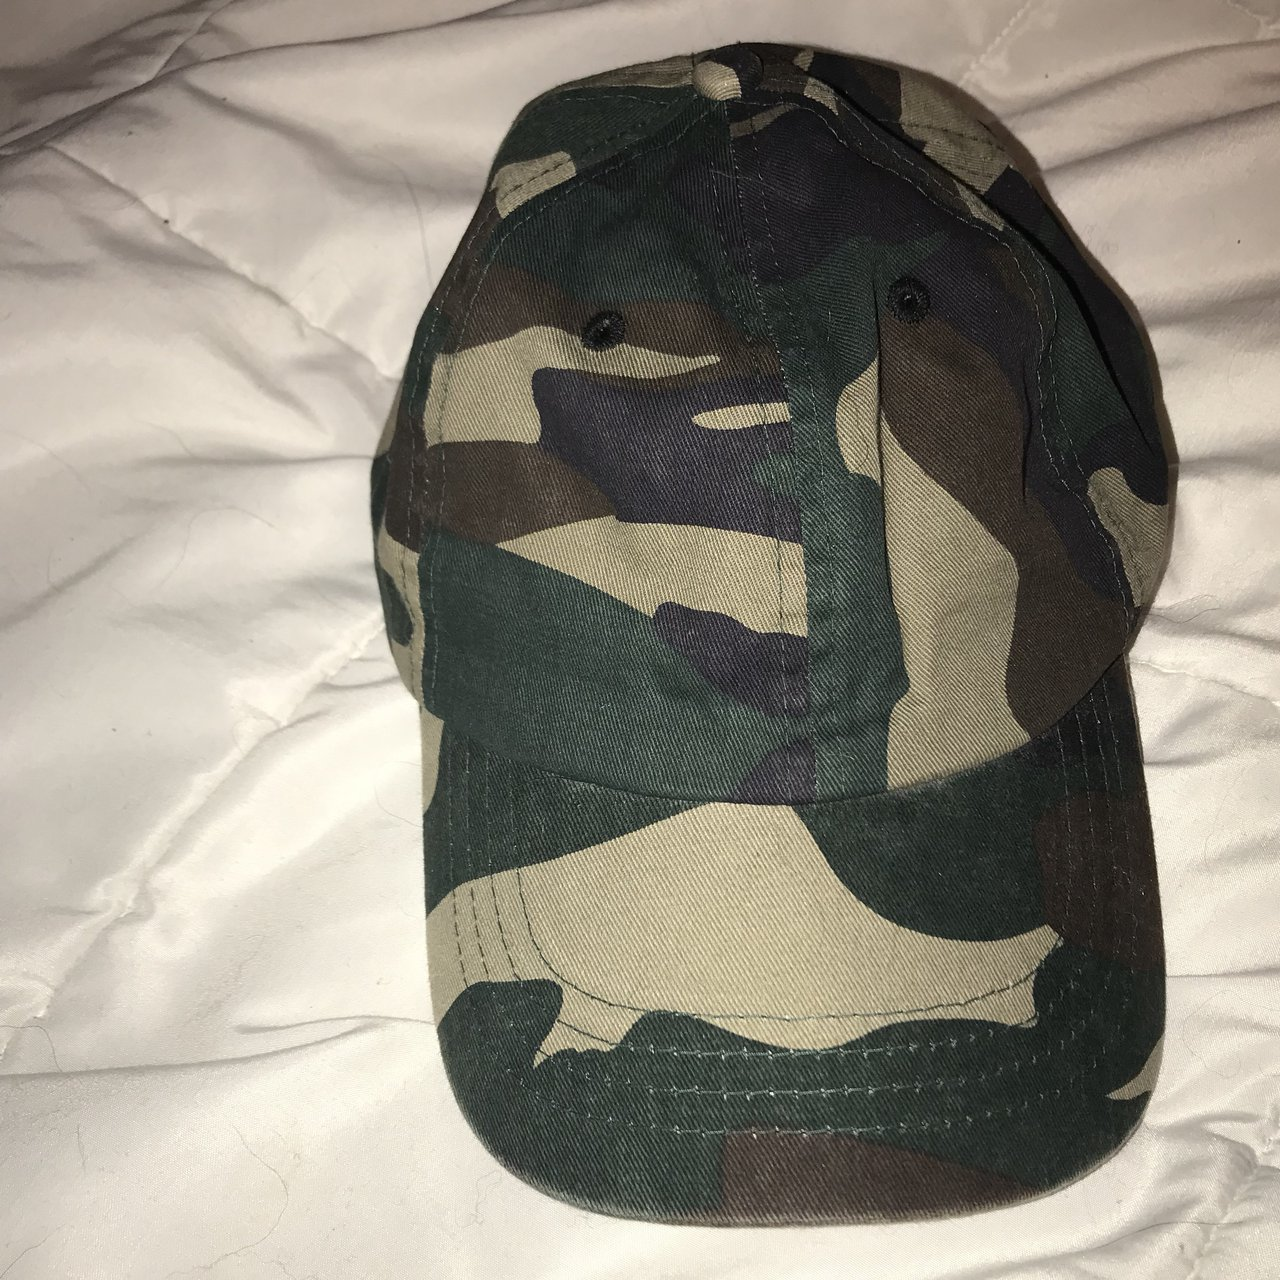 camo baseball dad hat bought from PacSun green brown tan on - Depop 141aa2408e6a